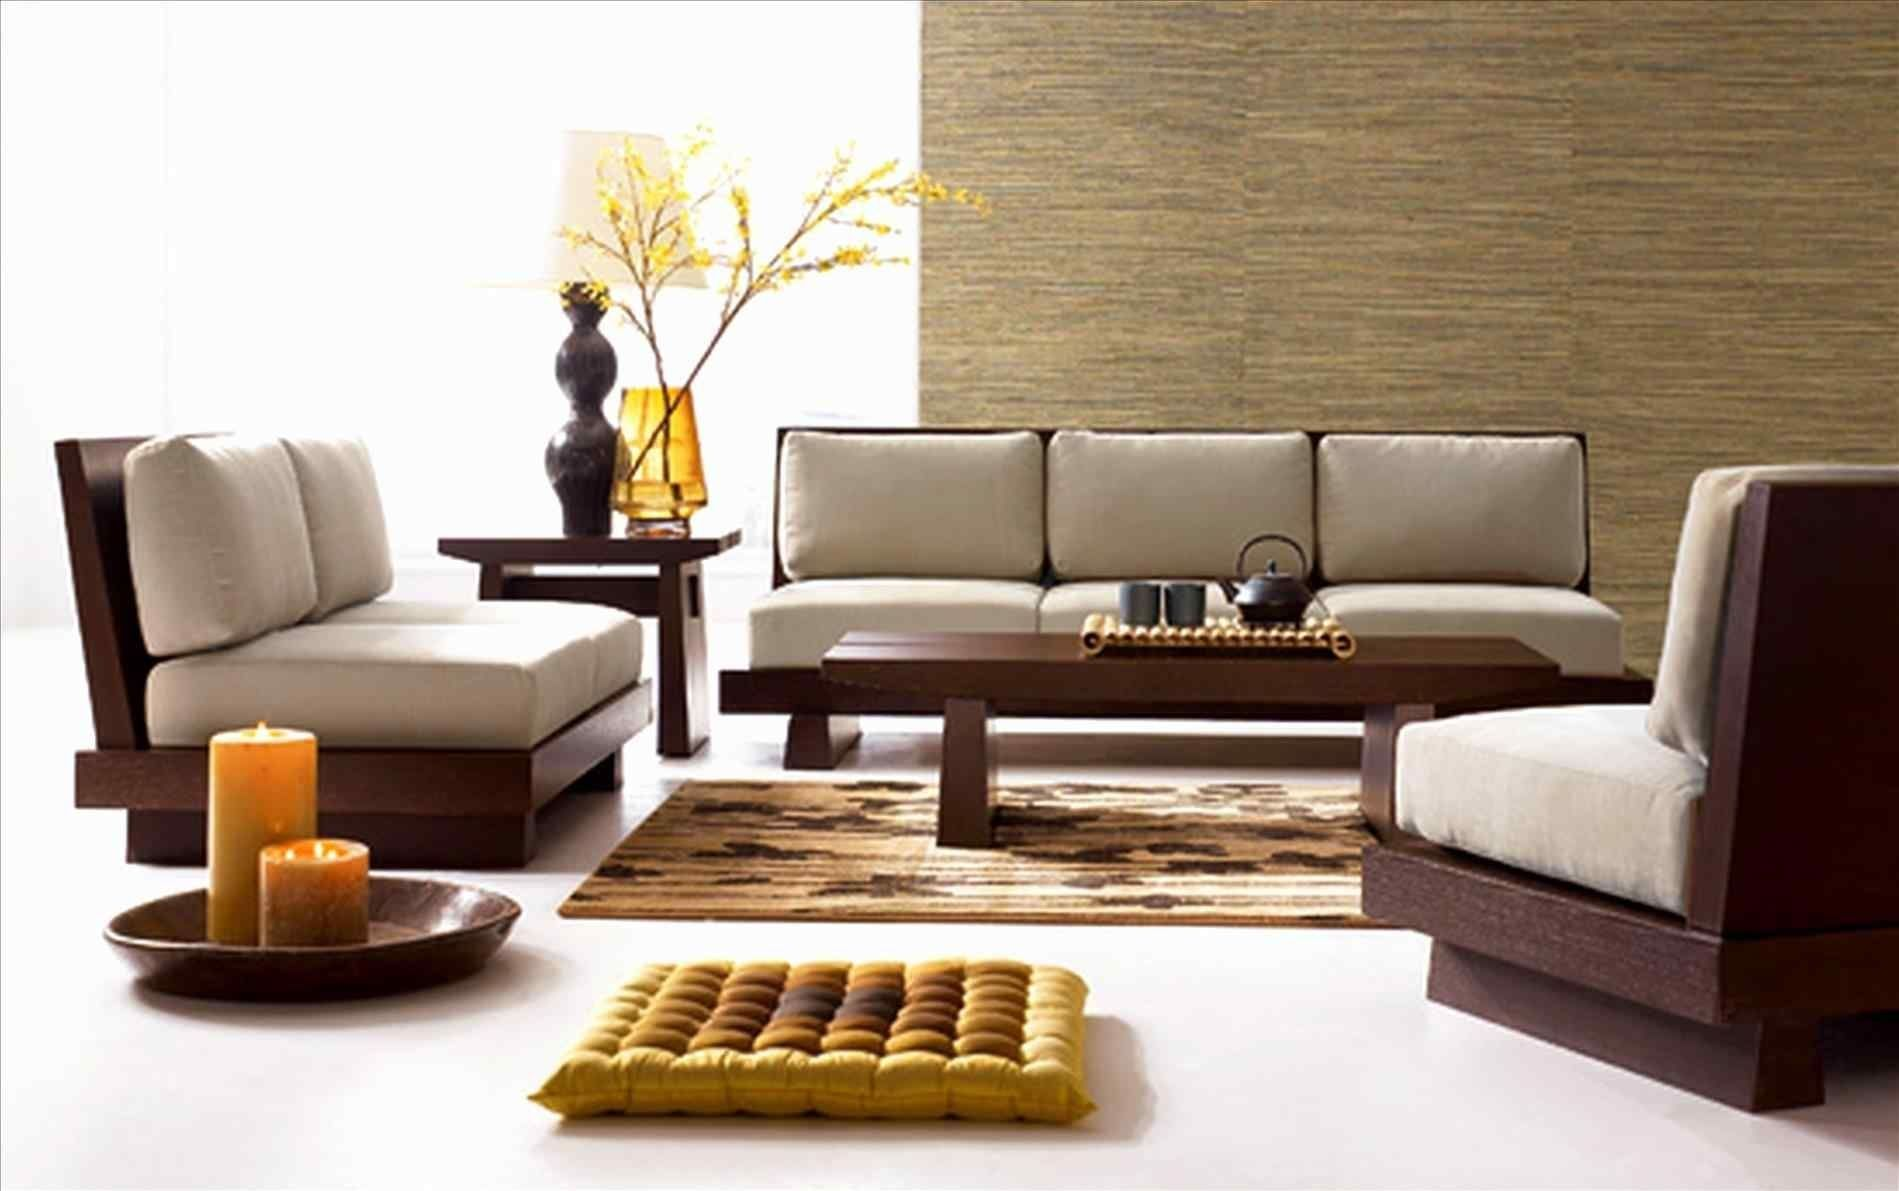 Best More Ideas Modern Wooden Sofa Sets For Living Room 640 x 480